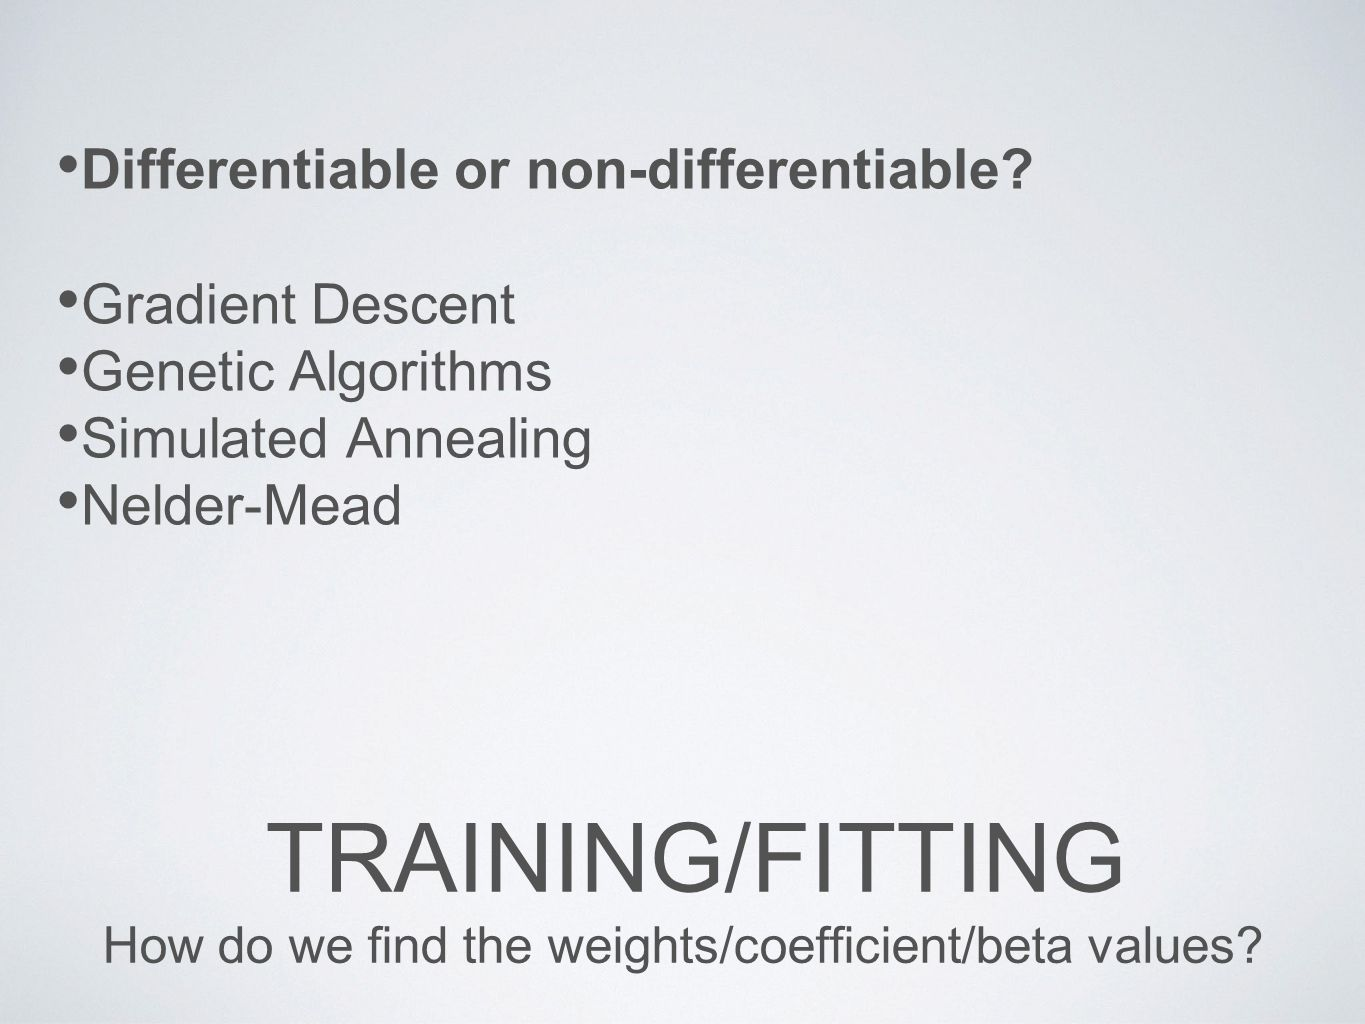 How do we find the weights/coefficient/beta values